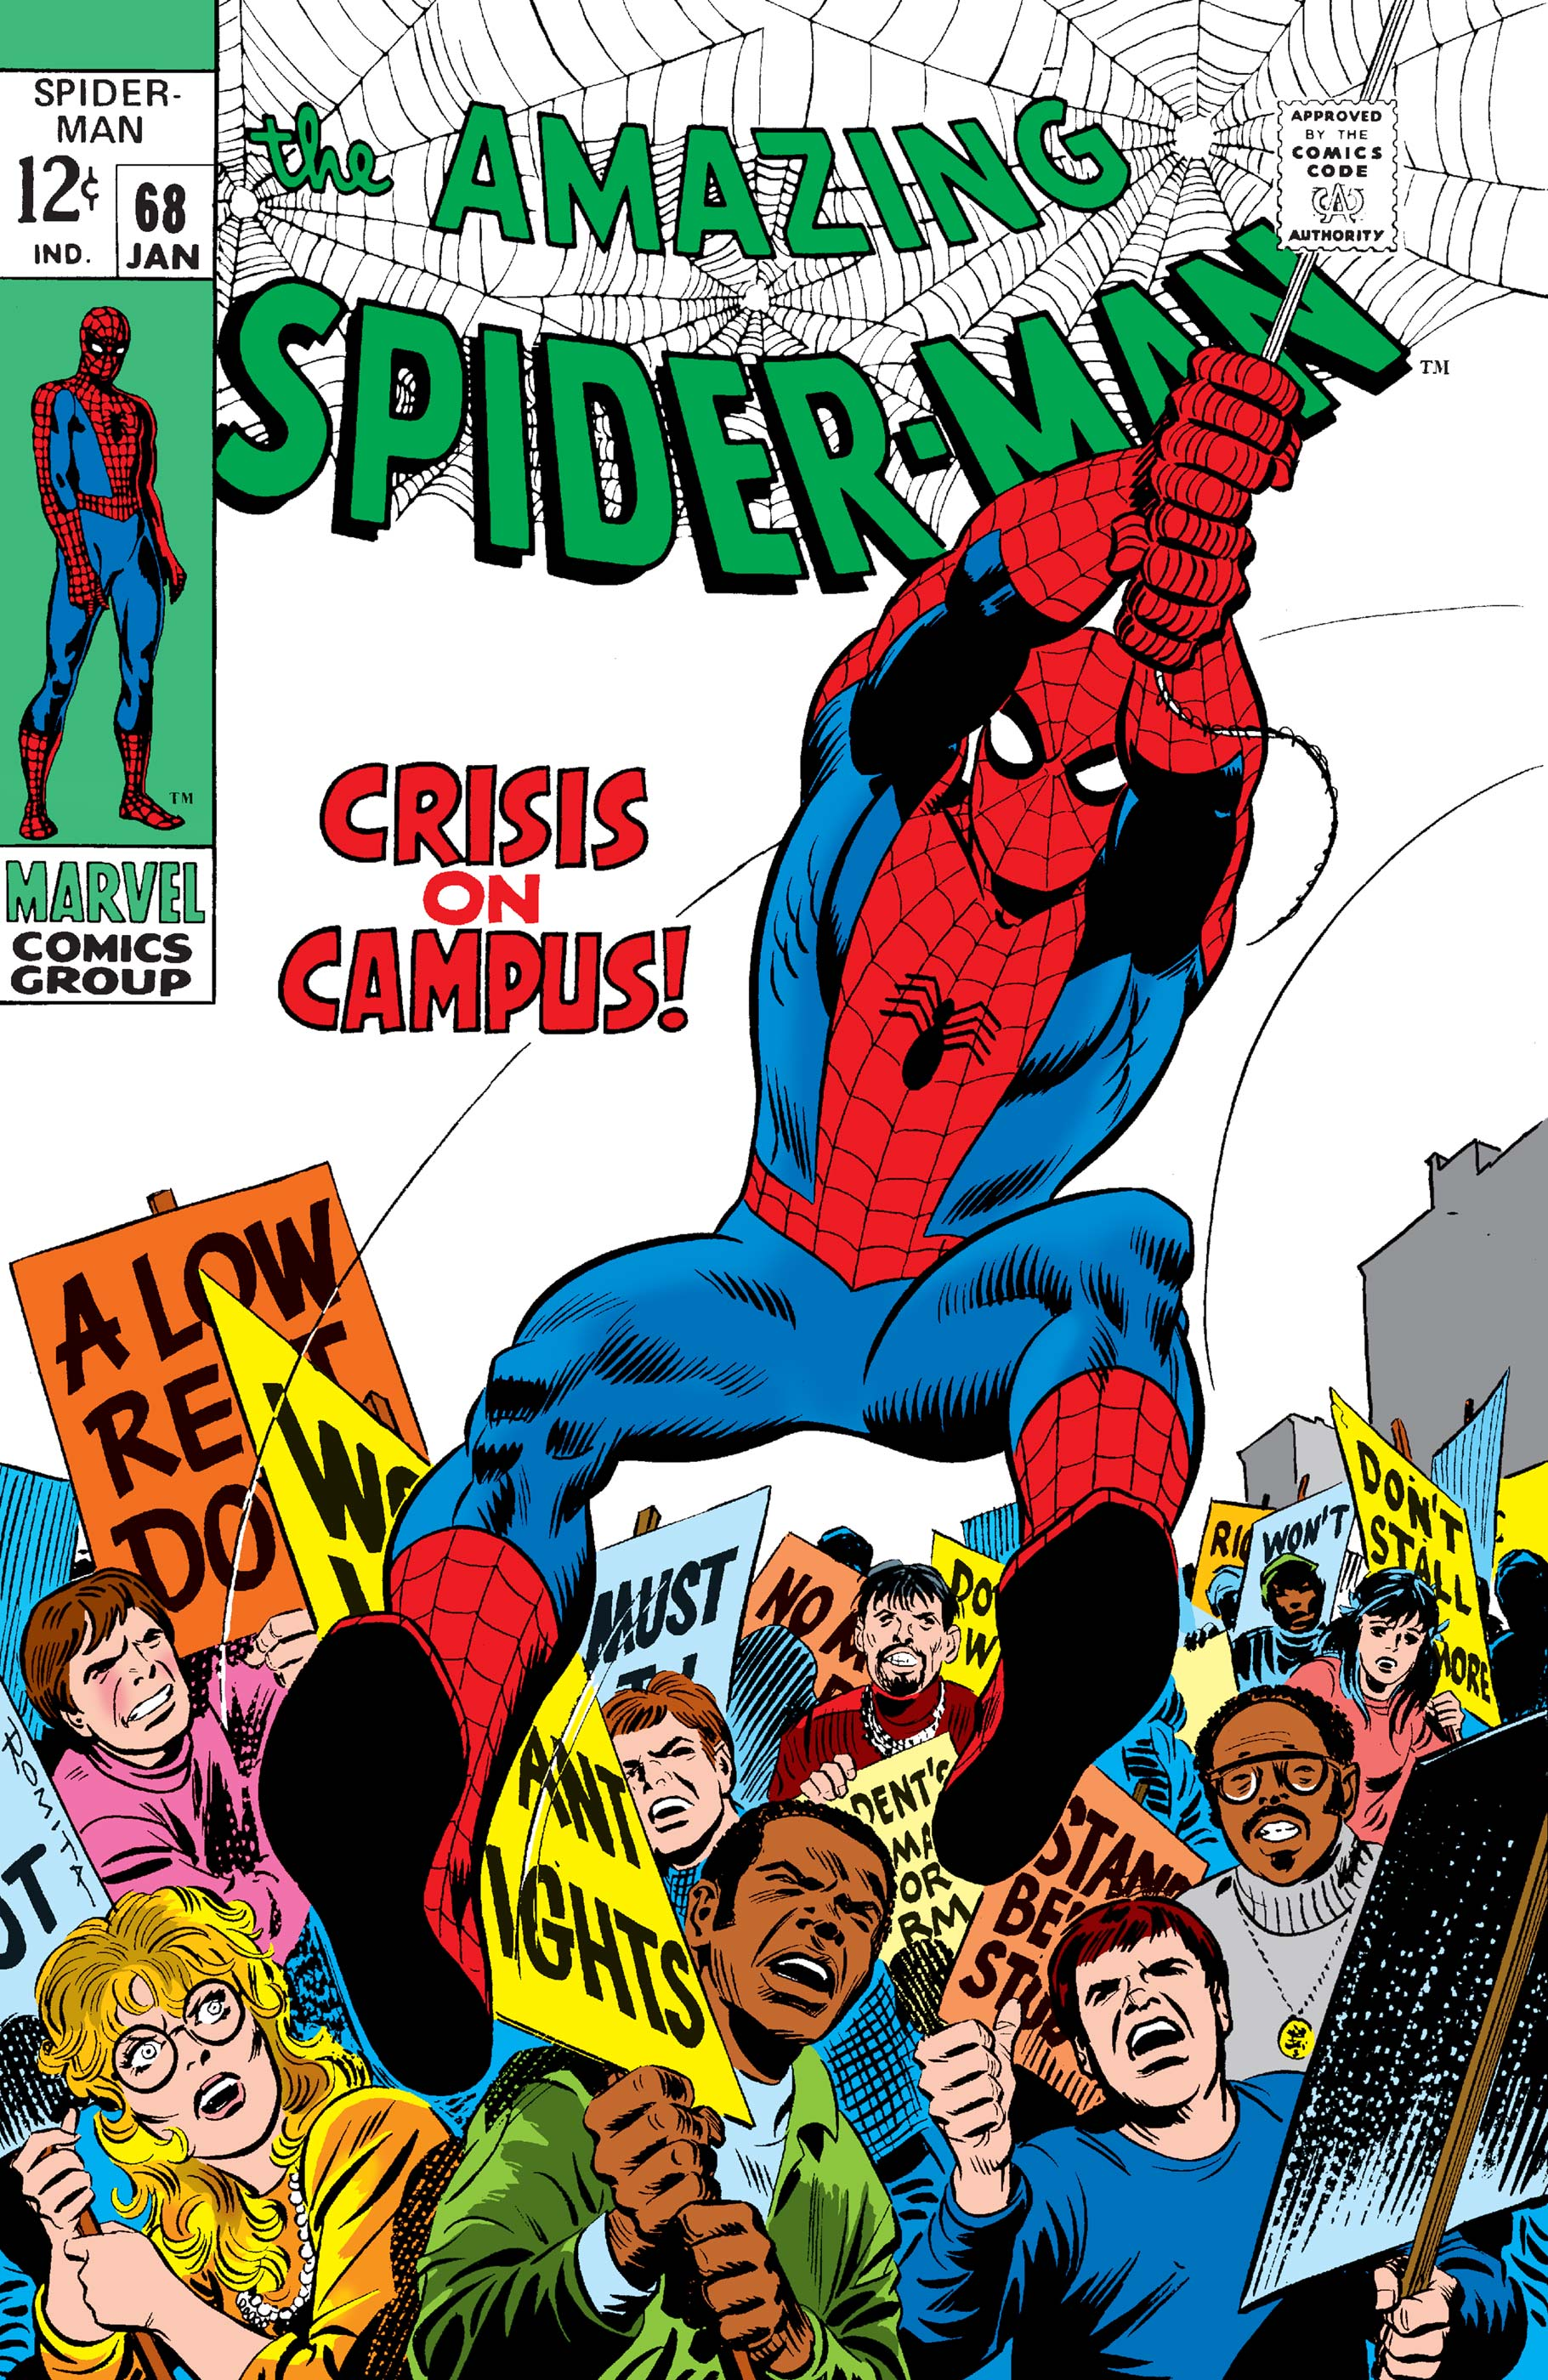 The Amazing Spider-Man (1963) #68